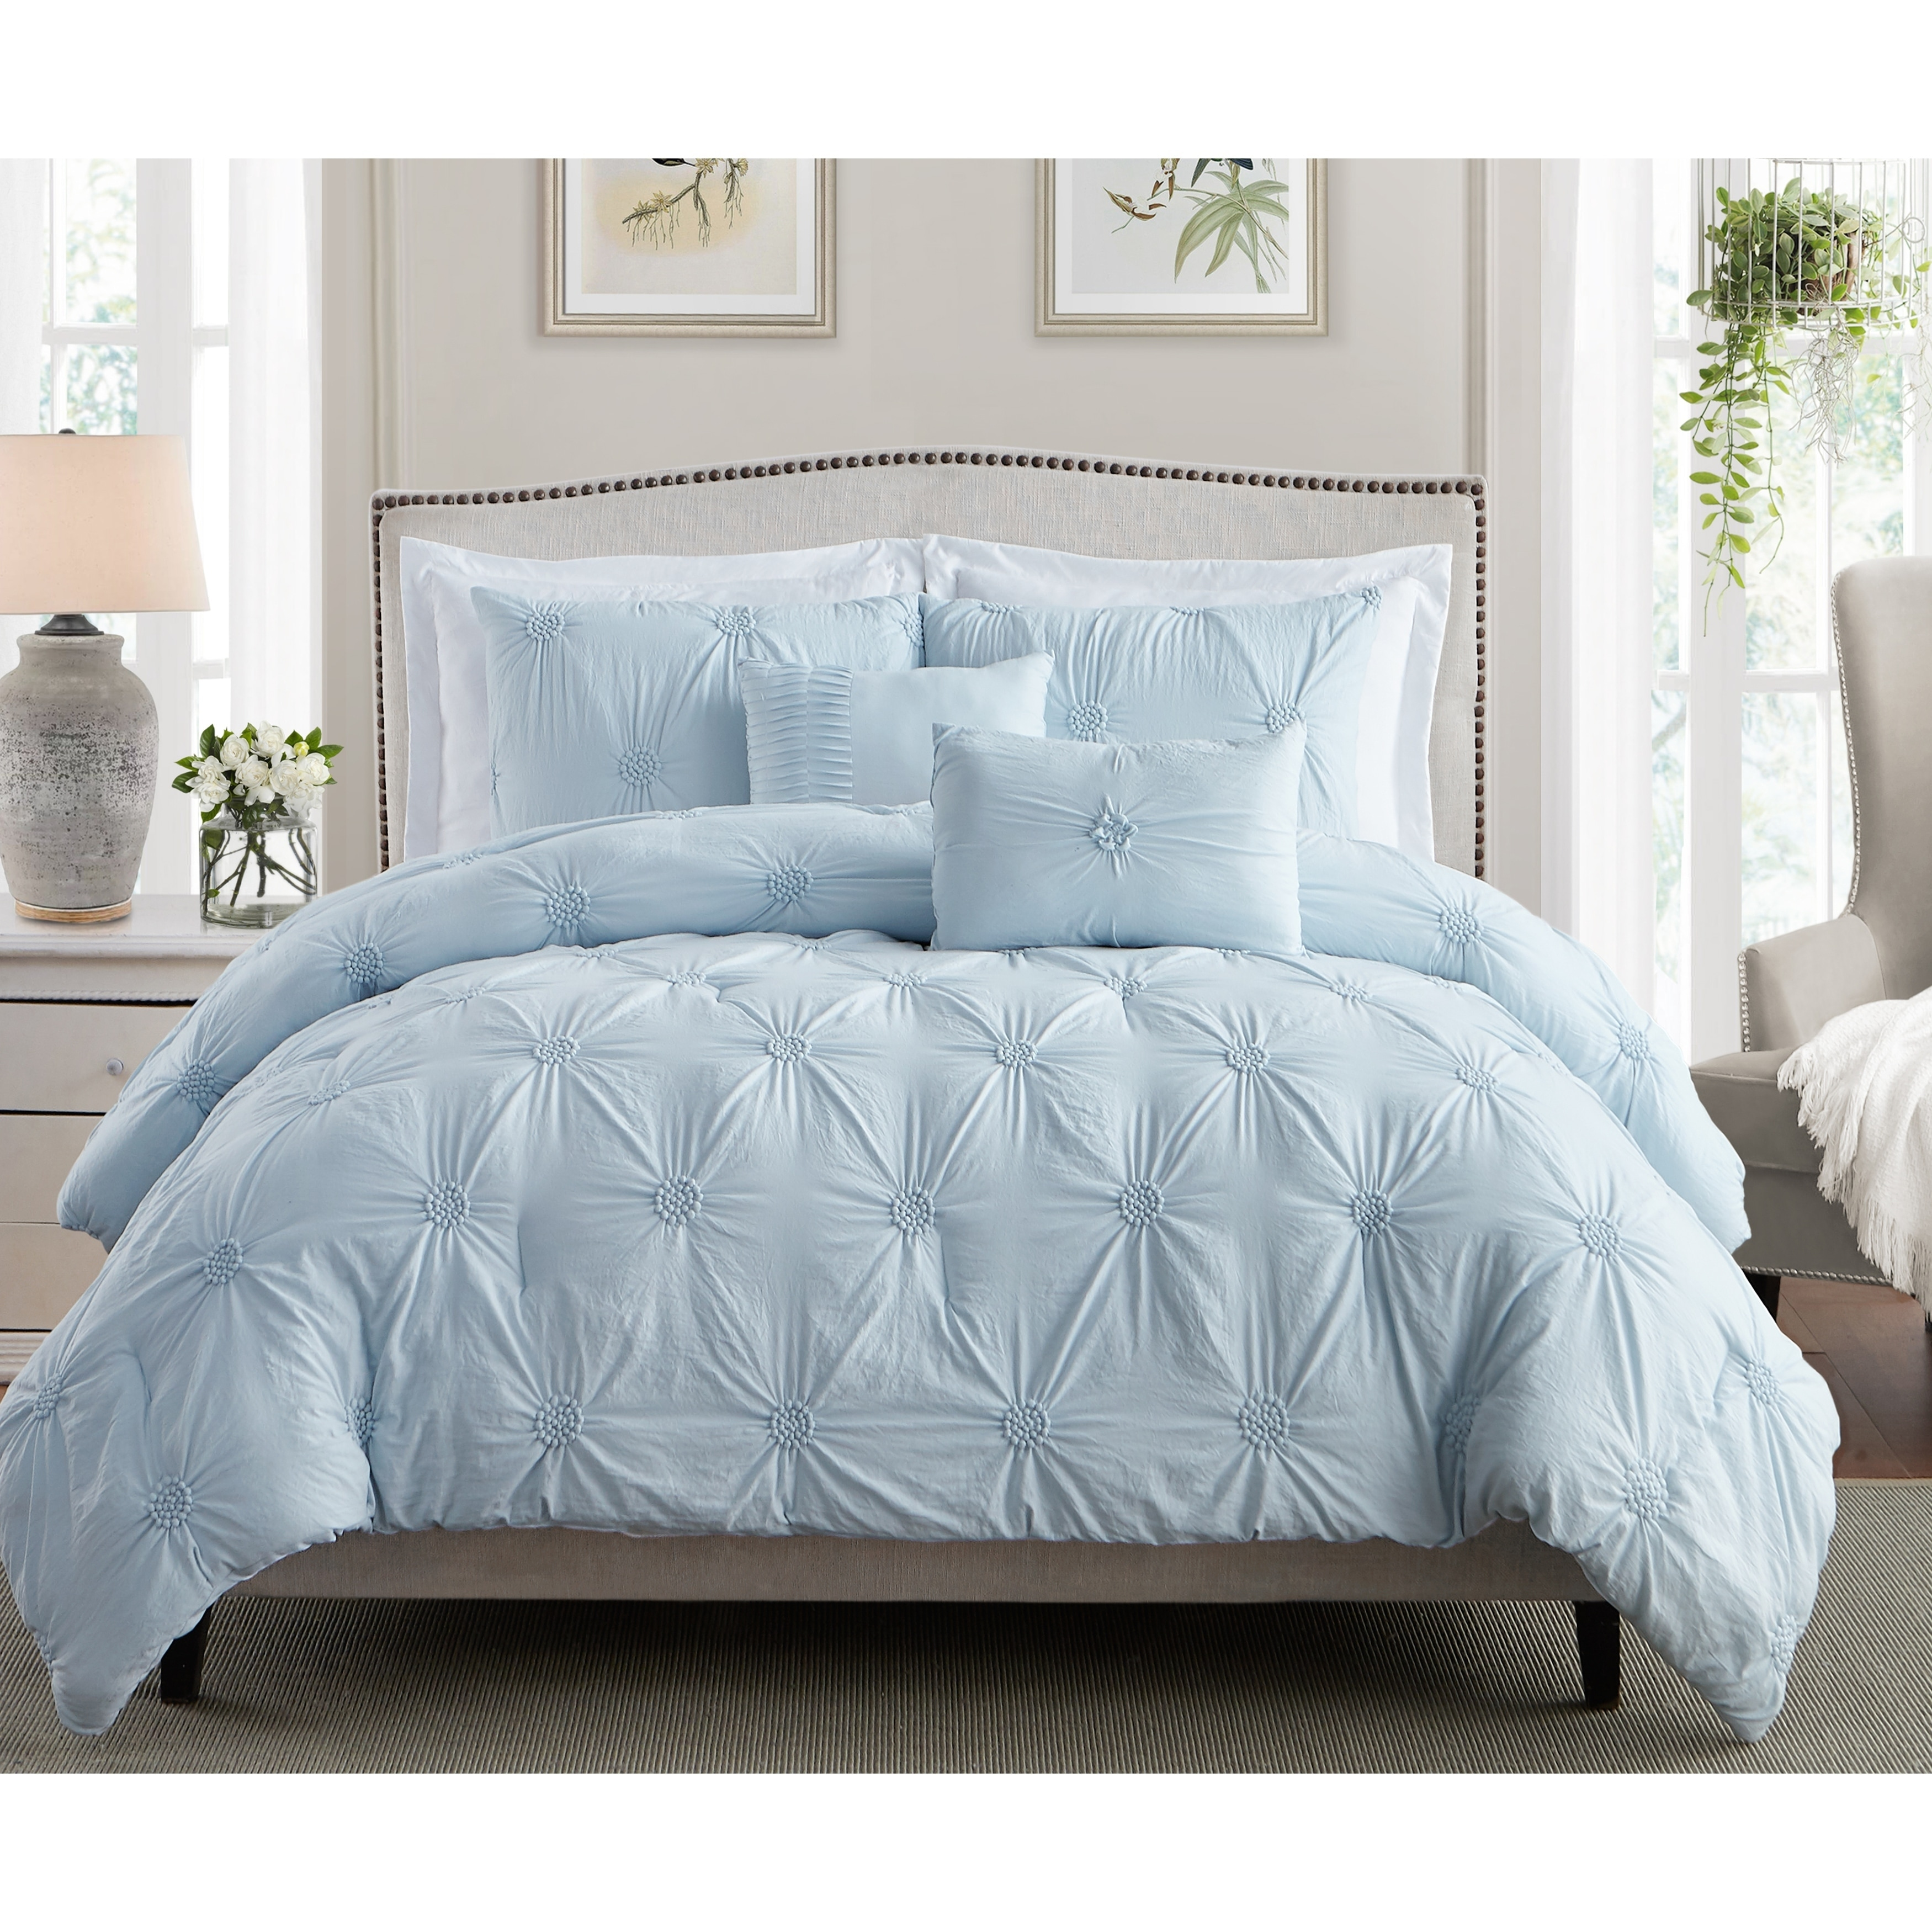 Swift Home Premium Bedding Set Collection 2-Piece Floral Ruched Pinch Pleat Pintuck Comforter Set Twin//Twin XL Gray